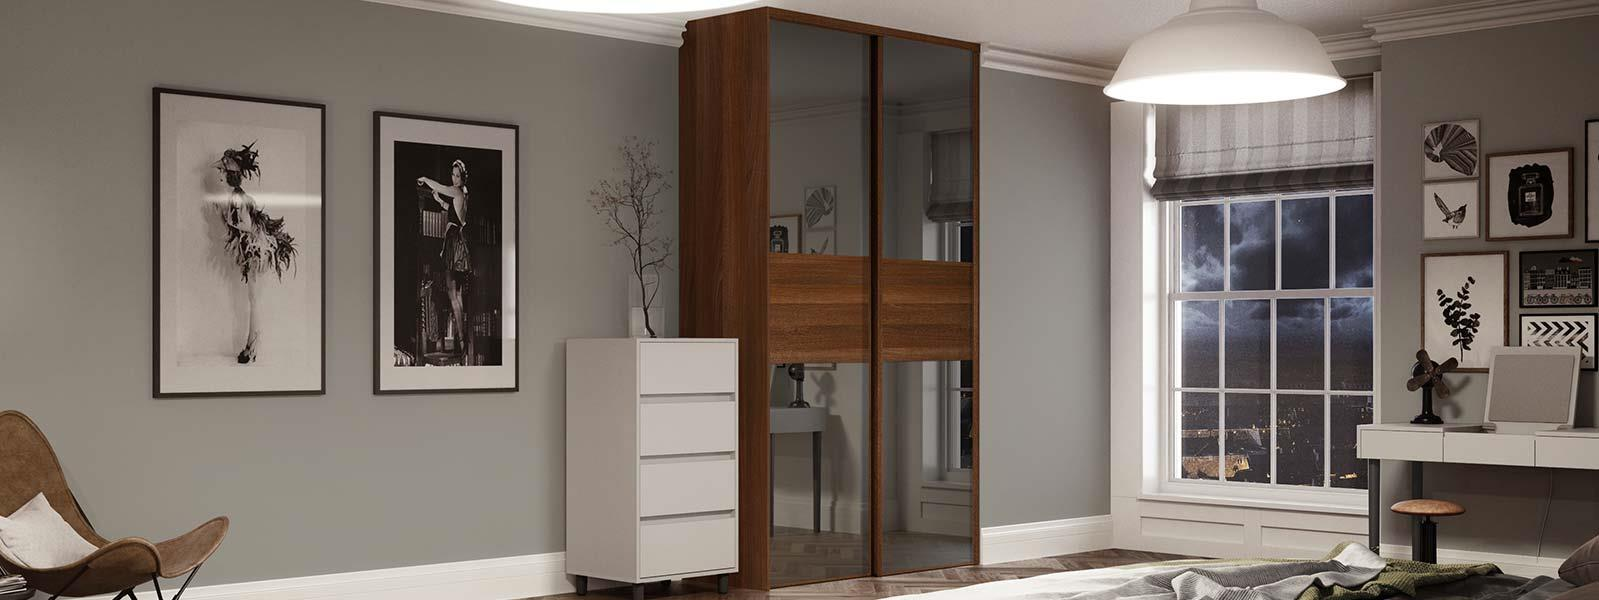 Classic 3 panel Fineline Grey Mirror / Walnut doors with matching Tower Unit interior | Spaceslide & Classic: 3 panel Fineline Grey Mirror / Walnut doors with matching ...